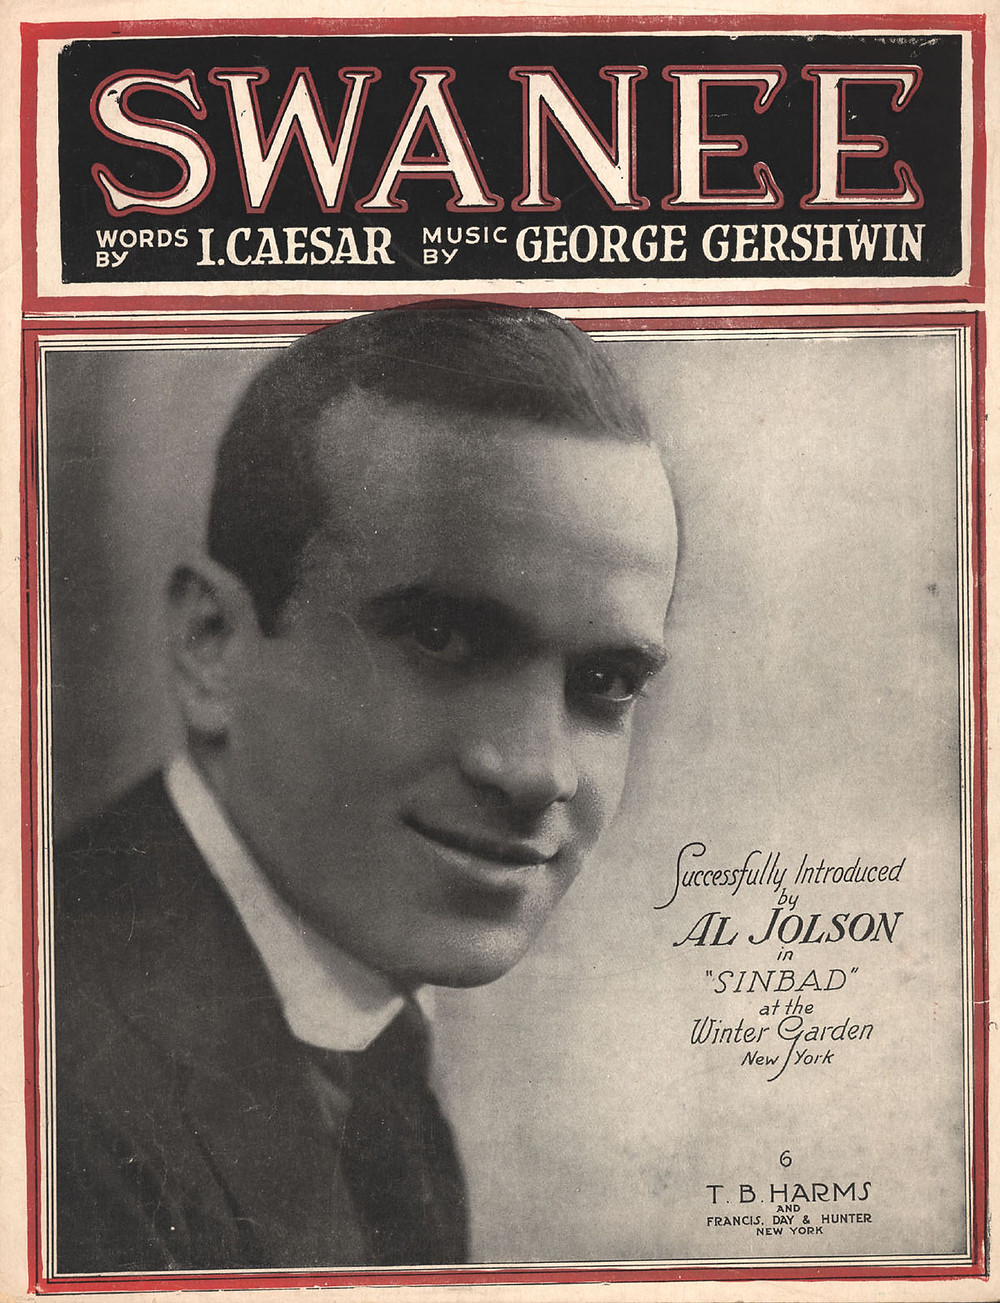 Al Jolson, featured on the cover of the popular song, Swanee, in 1919